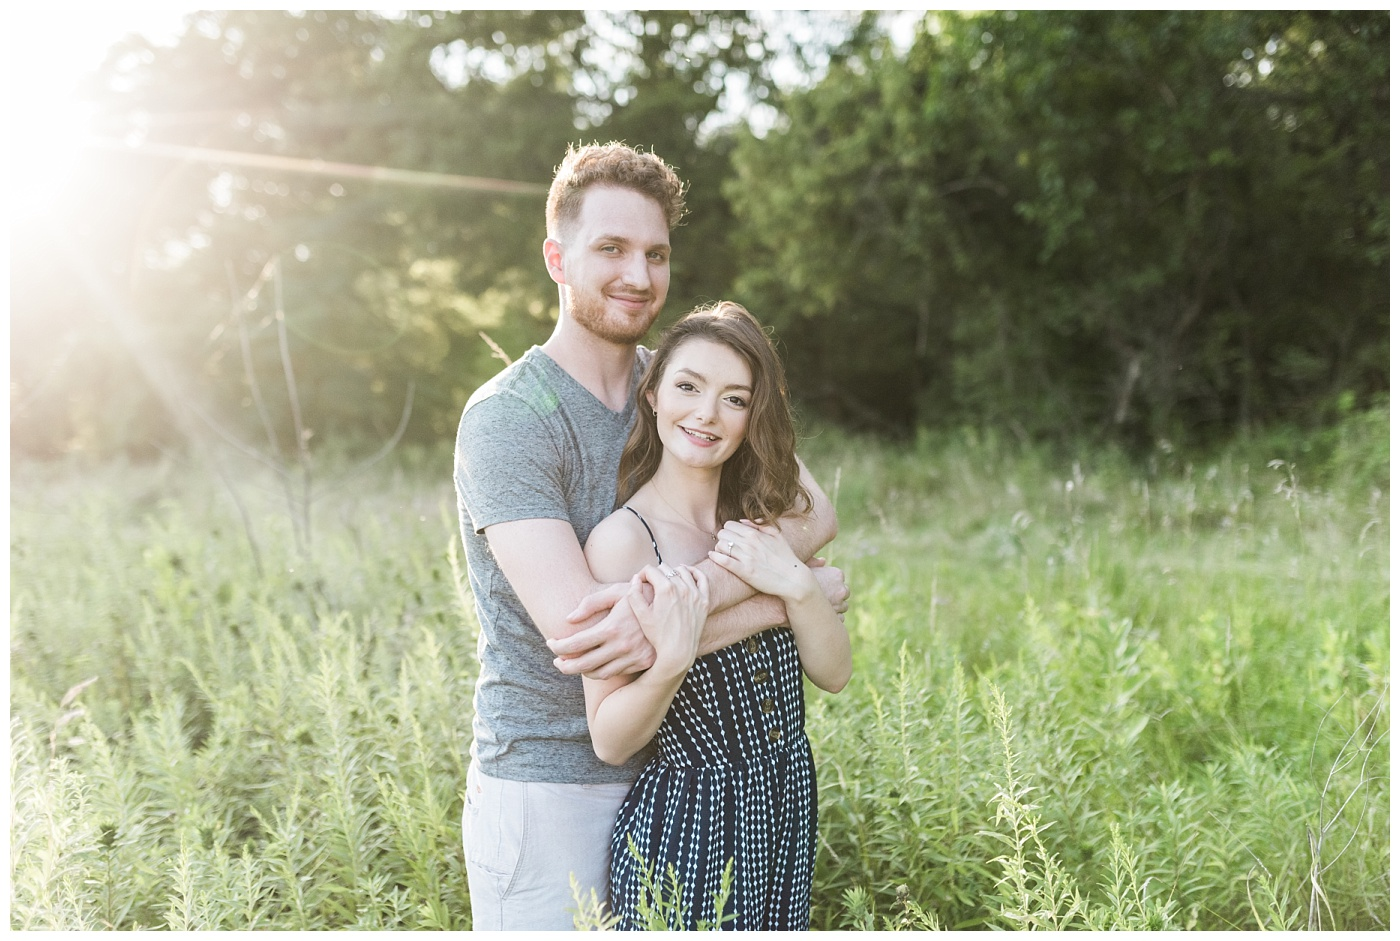 Stephanie Marie Photography Labor for Love Downtown North Liberty Engagement Session Iowa City Wedding Photographer Devin Cody_0013.jpg